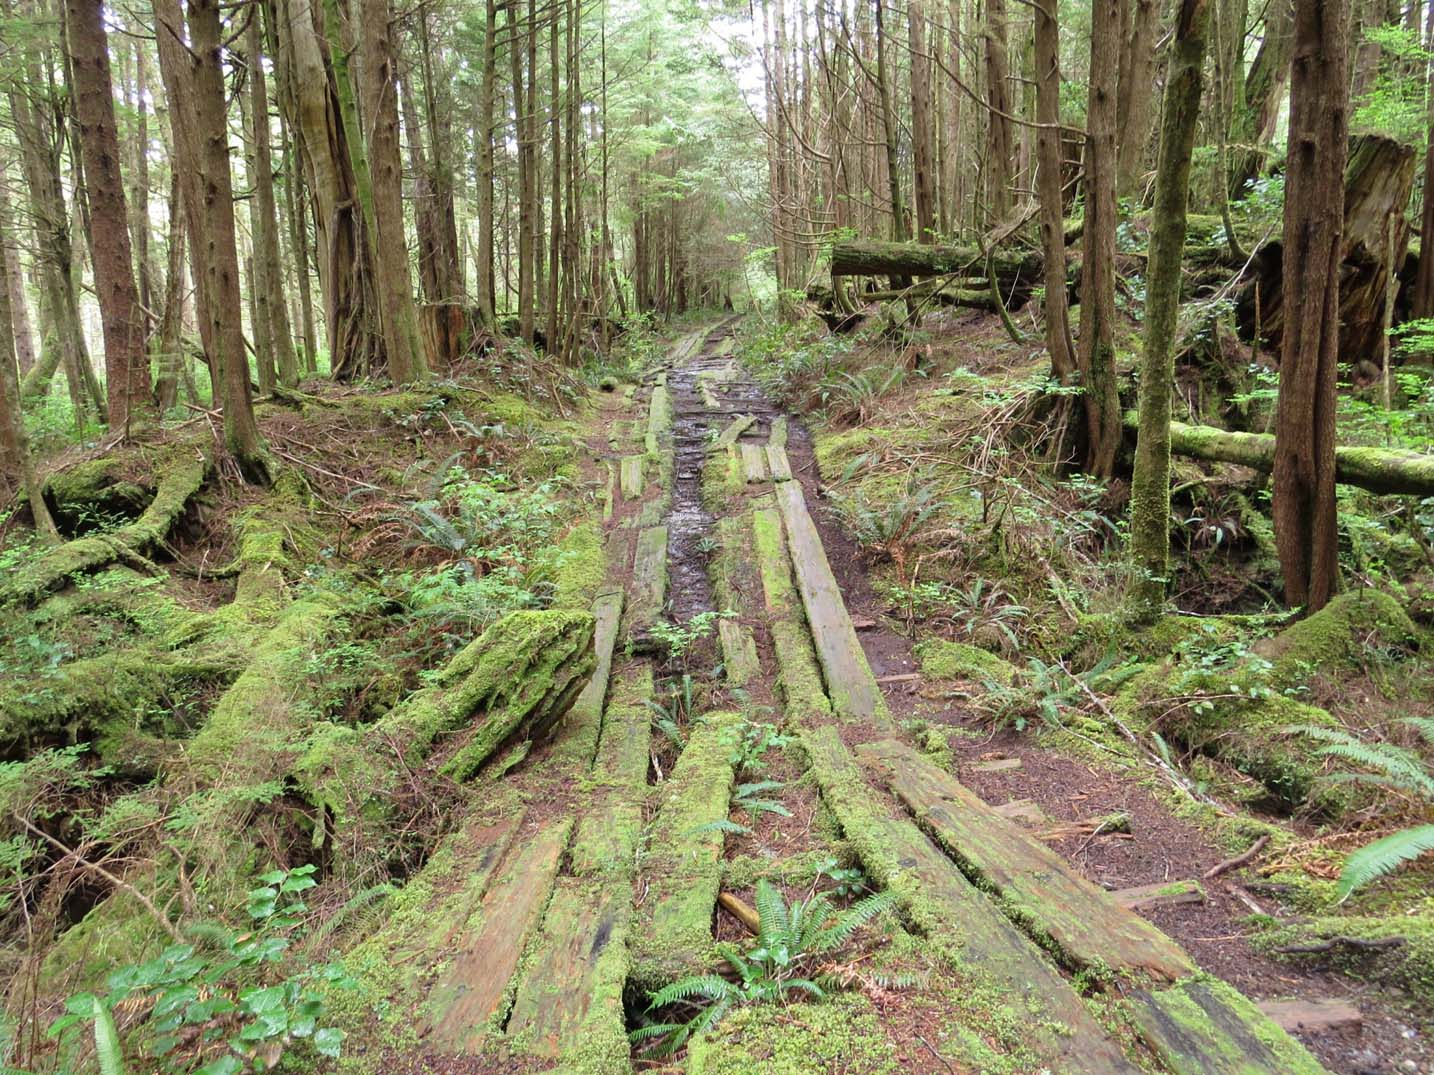 Mossy planks leaving into forest